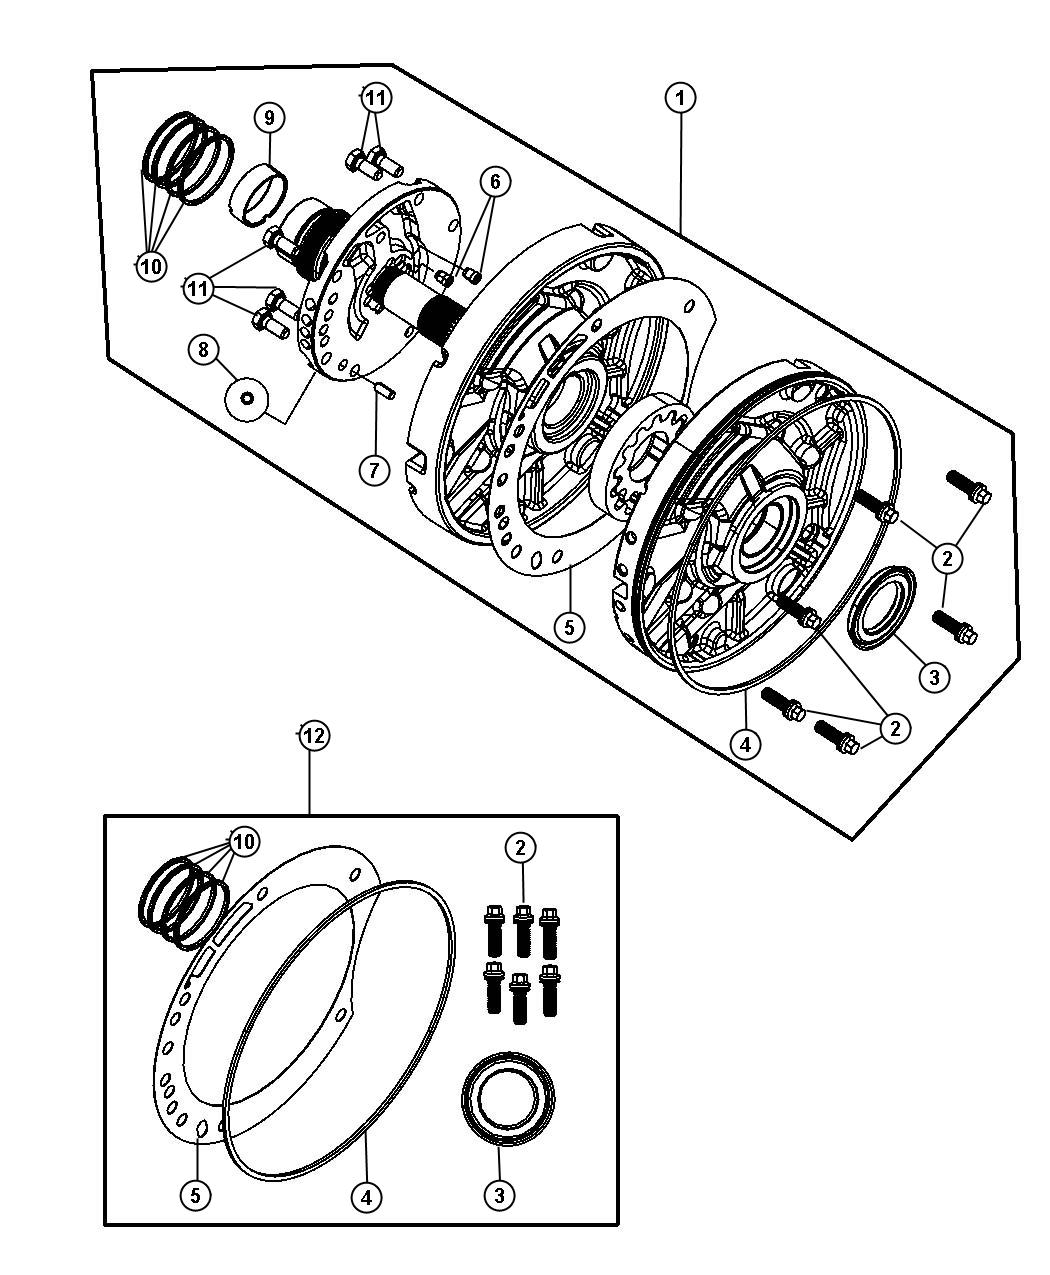 Ford Keyless Entry Diagram moreover T15104150 Location pcm as well 04880403AE in addition 04897453AA likewise 05510007AD. on chrysler pacifica fwd